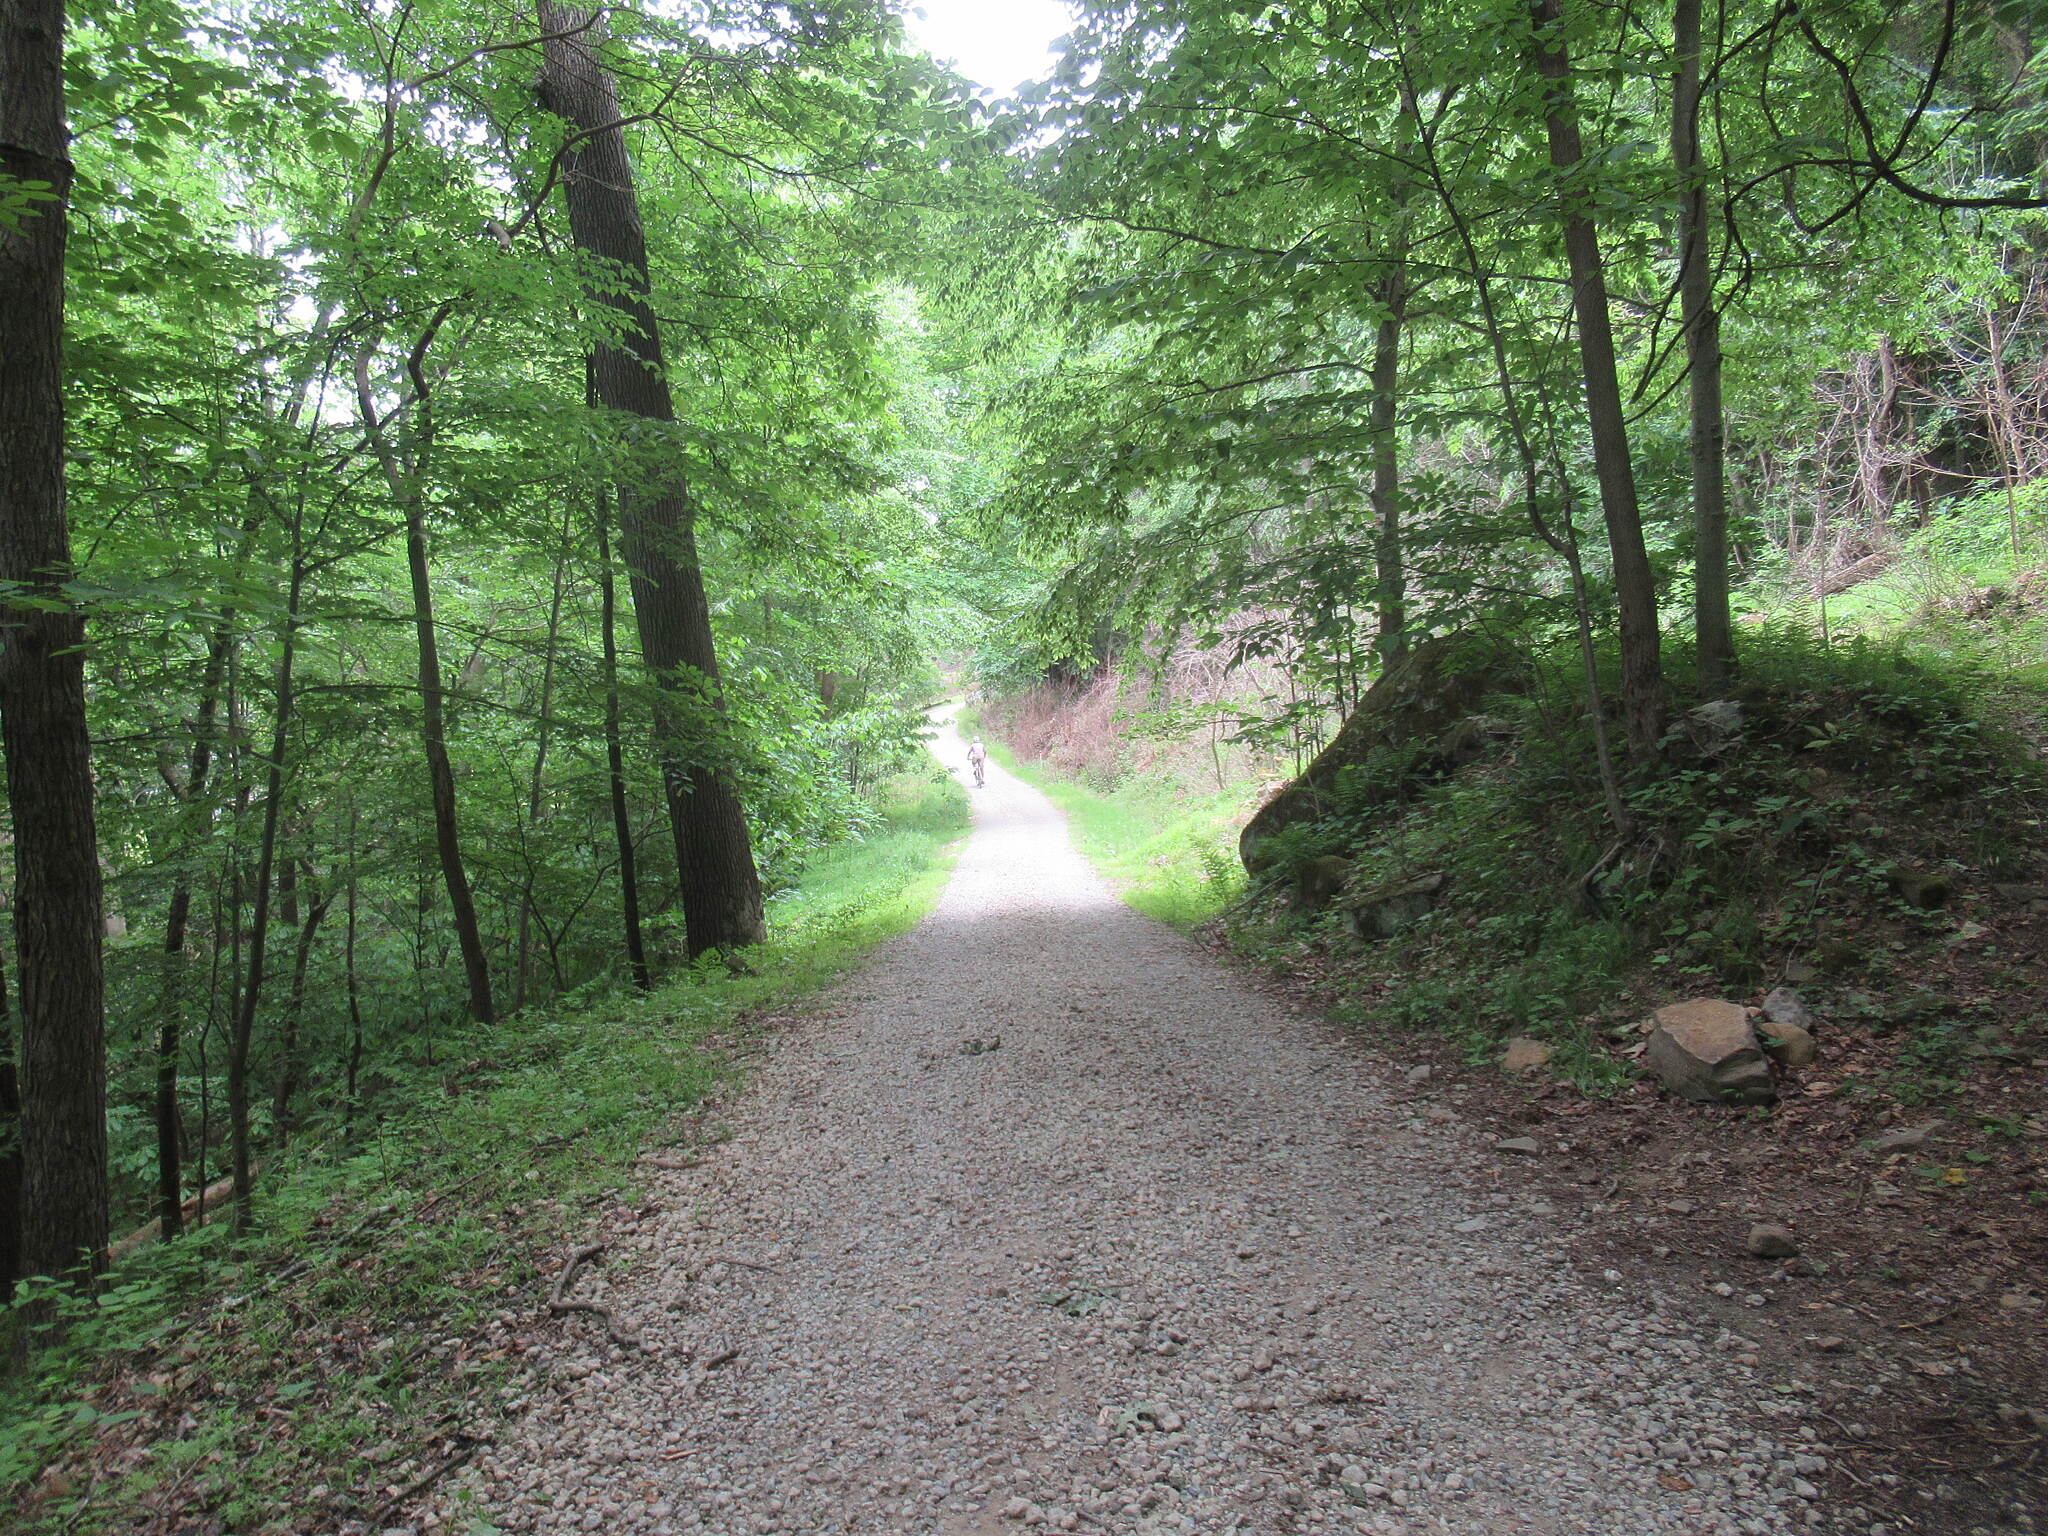 Allegheny River Trail Dirt Road  Dirt road section of the trail is approx 2 miles of bumpy gravel